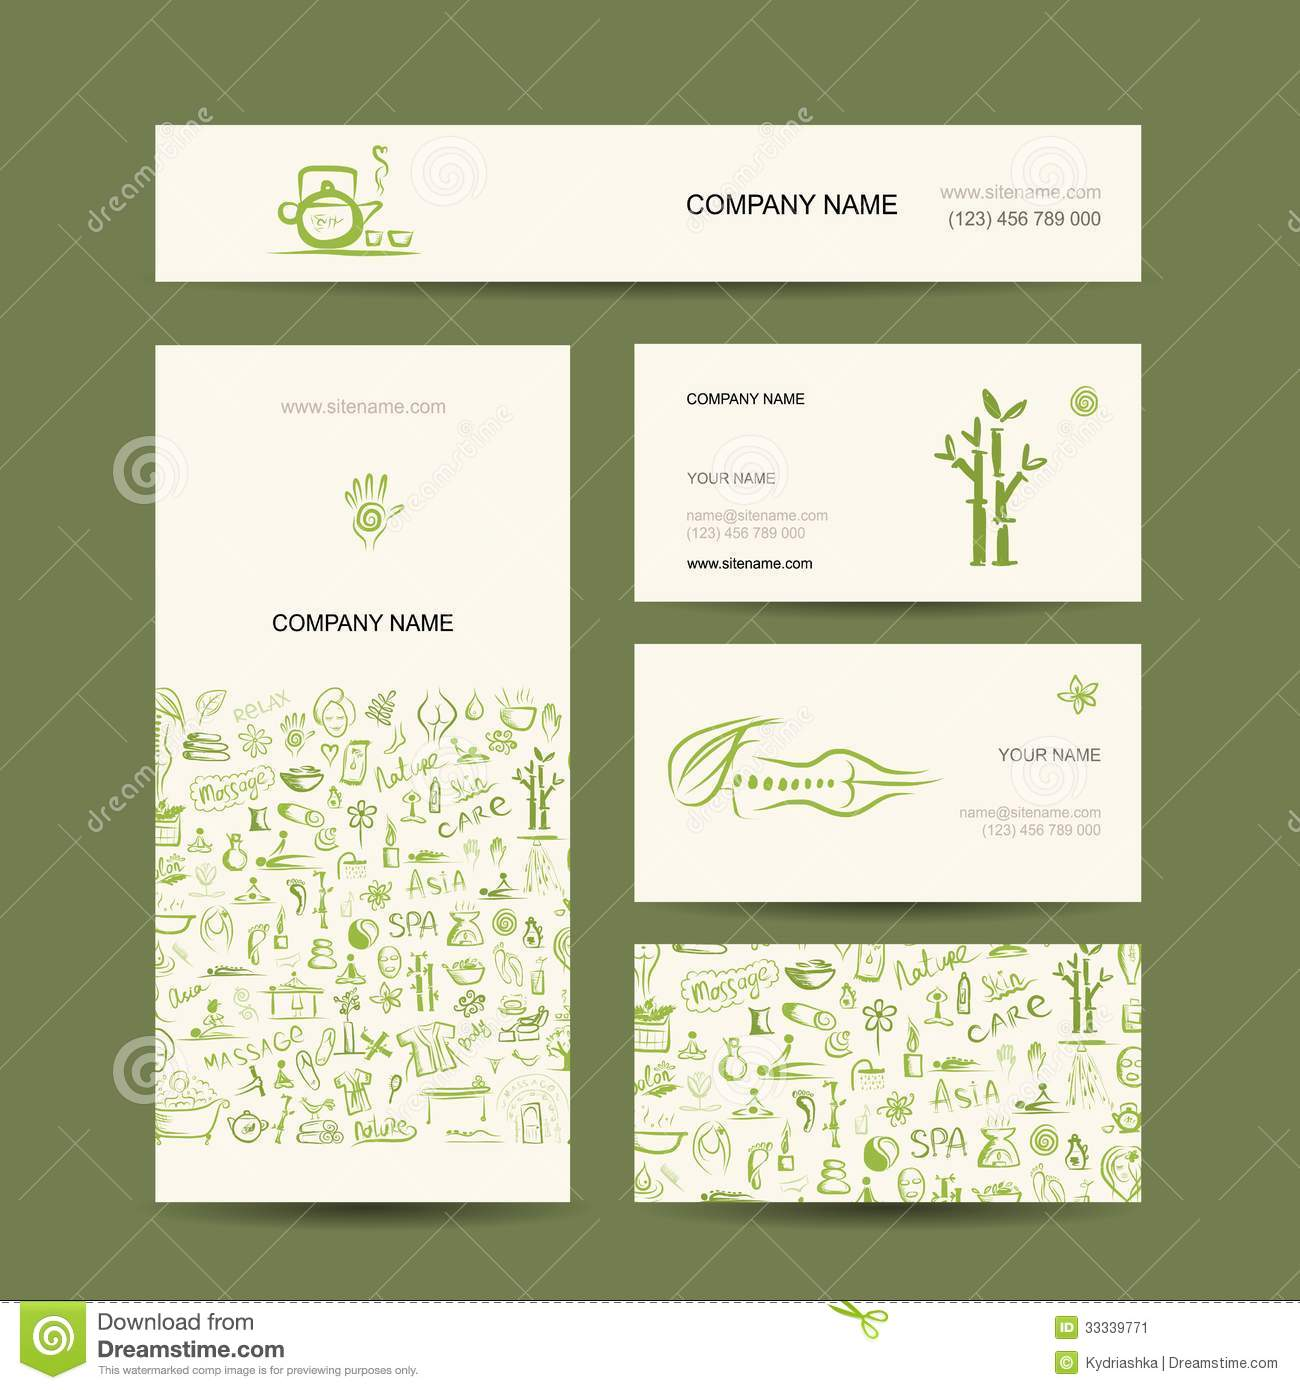 Business Cards Design, Massage And Spa Concept Stock Vector ...